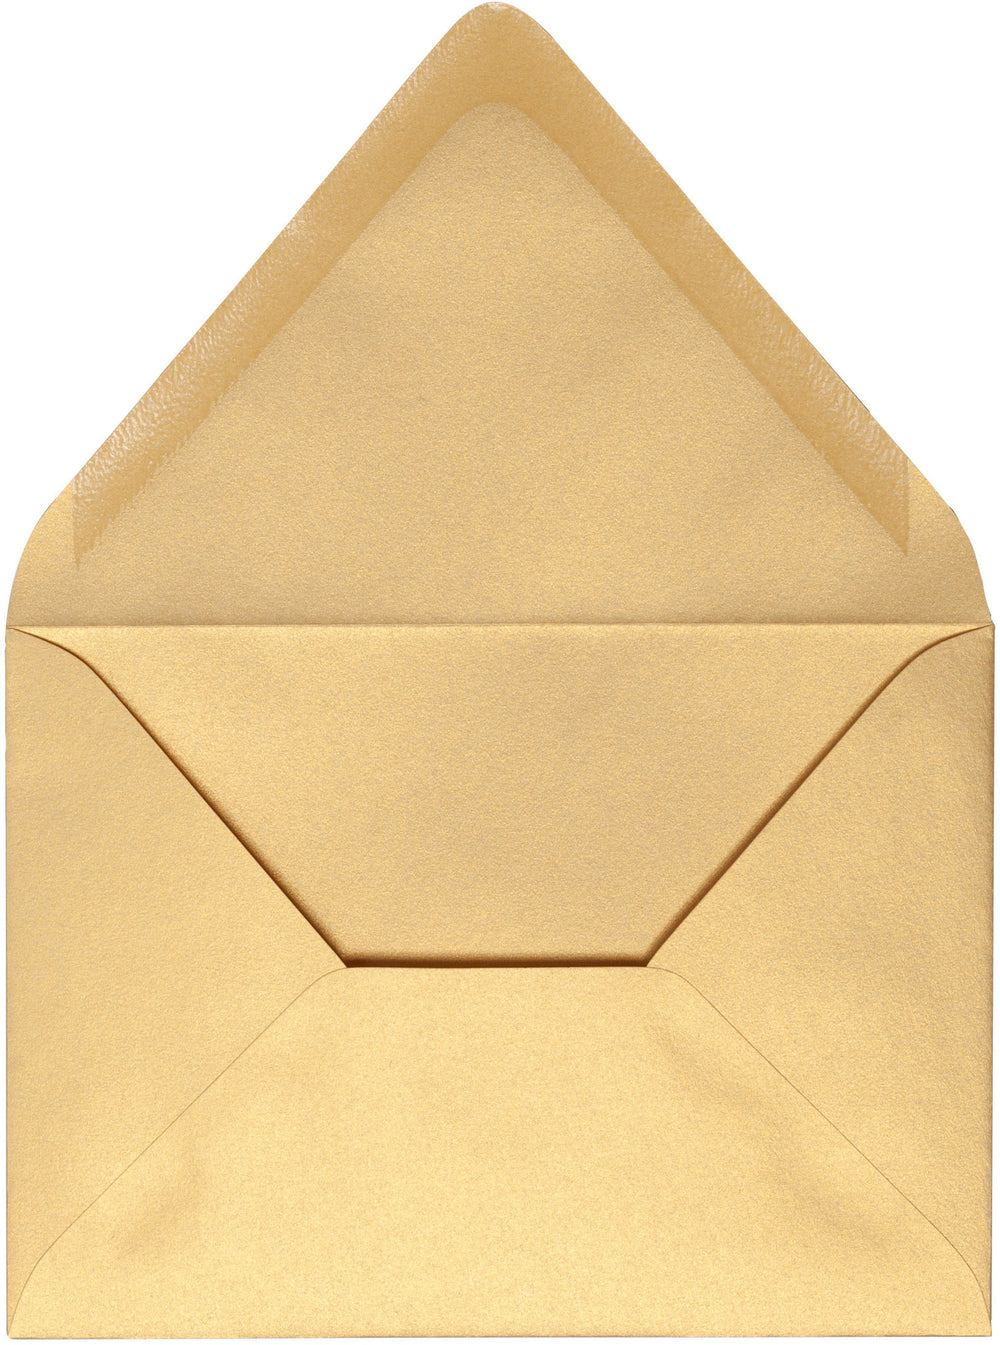 "A-2 Gold Metallic Euro Flap Envelopes (4 3/8"" x 5 3/4"")"